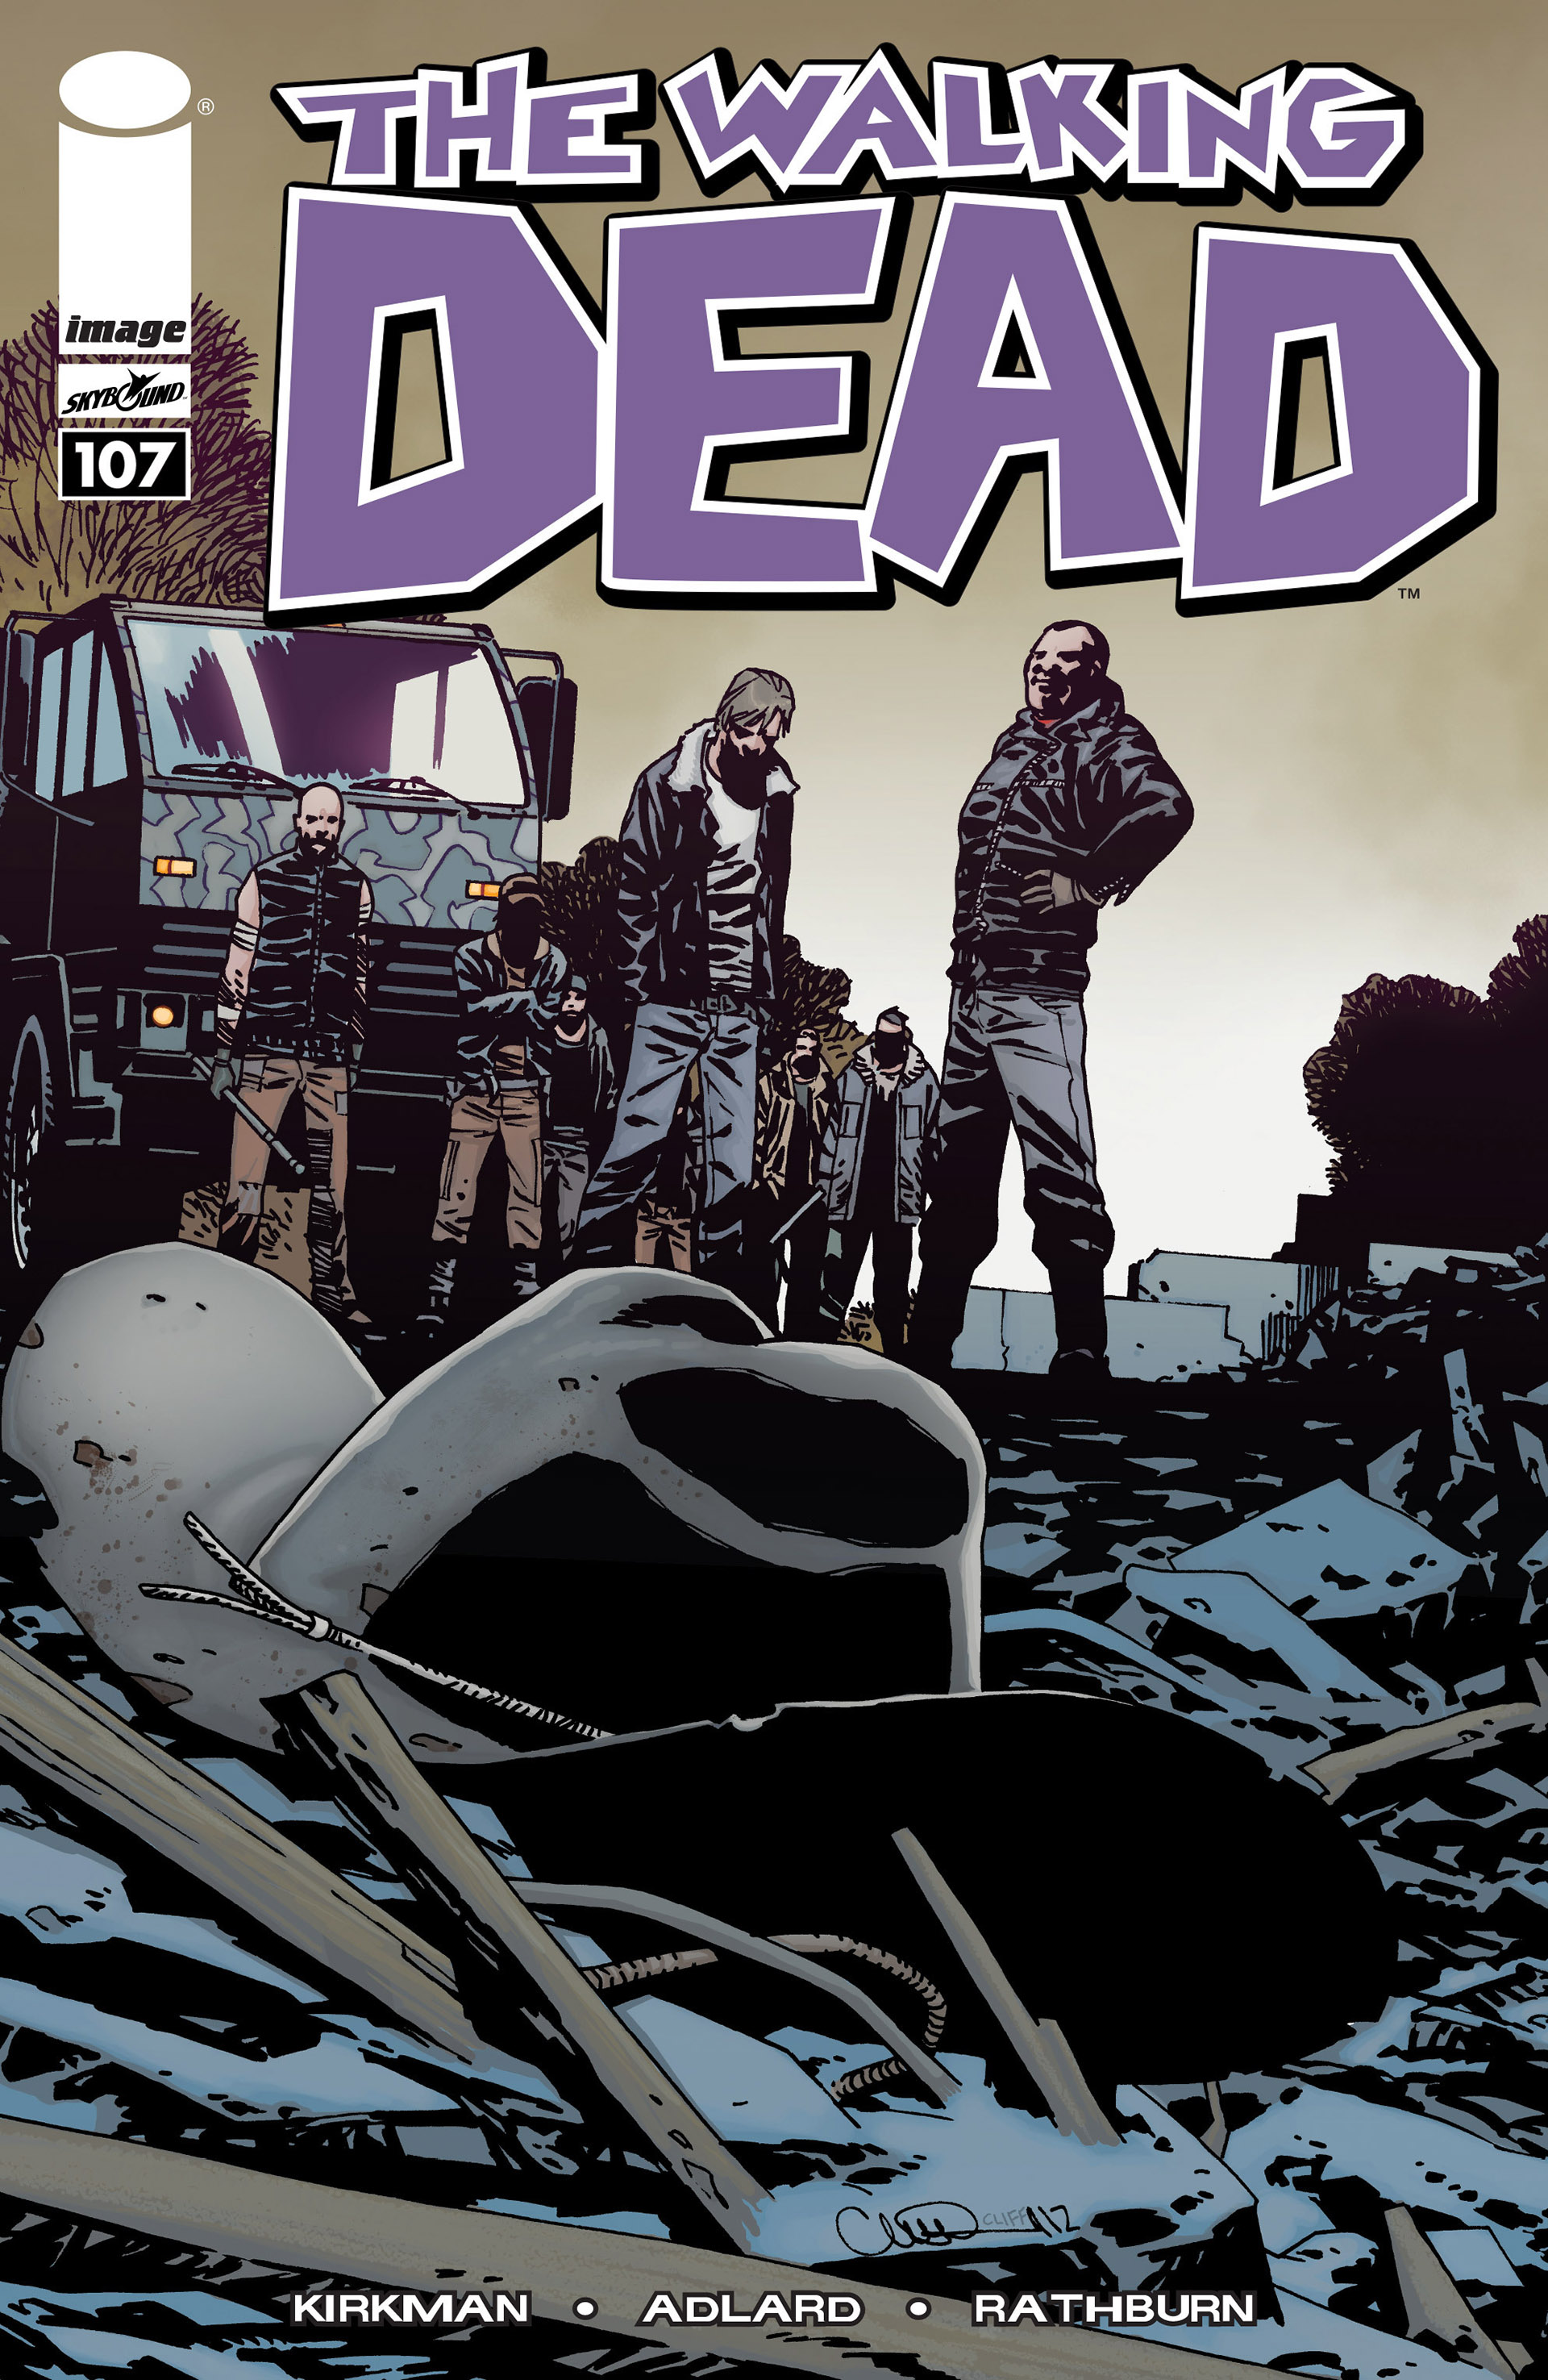 The Walking Dead 107 Page 1